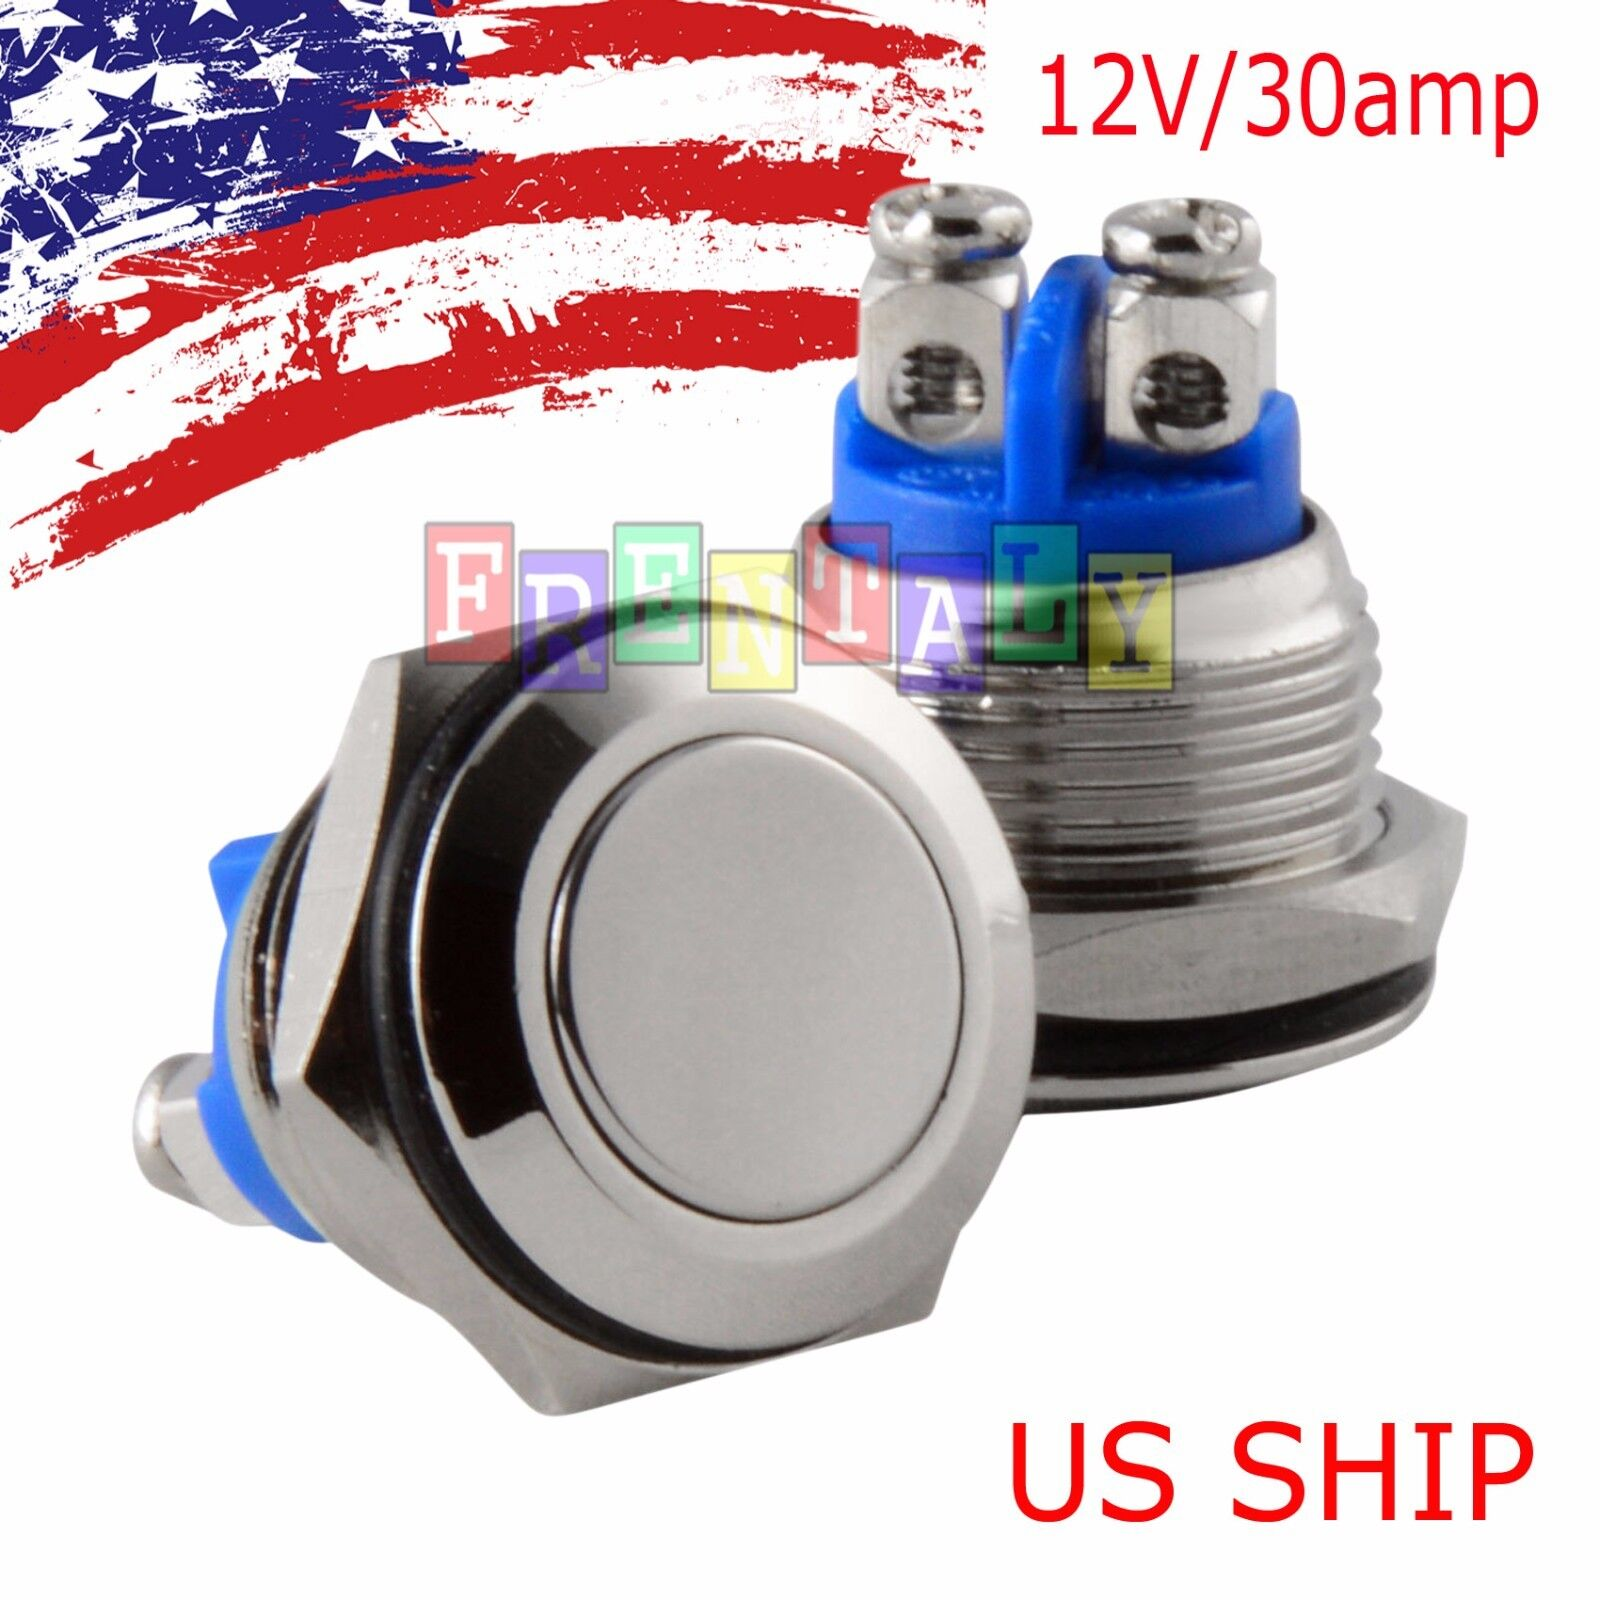 Industrial Switches For Sale Ebay Rocker Switch Lighted Spst Onoff 20a 12vdc Amber 30 Amp Metal Momentary Waterproof 12v 16mm 5 8 Horn Starter Nitrous Butto